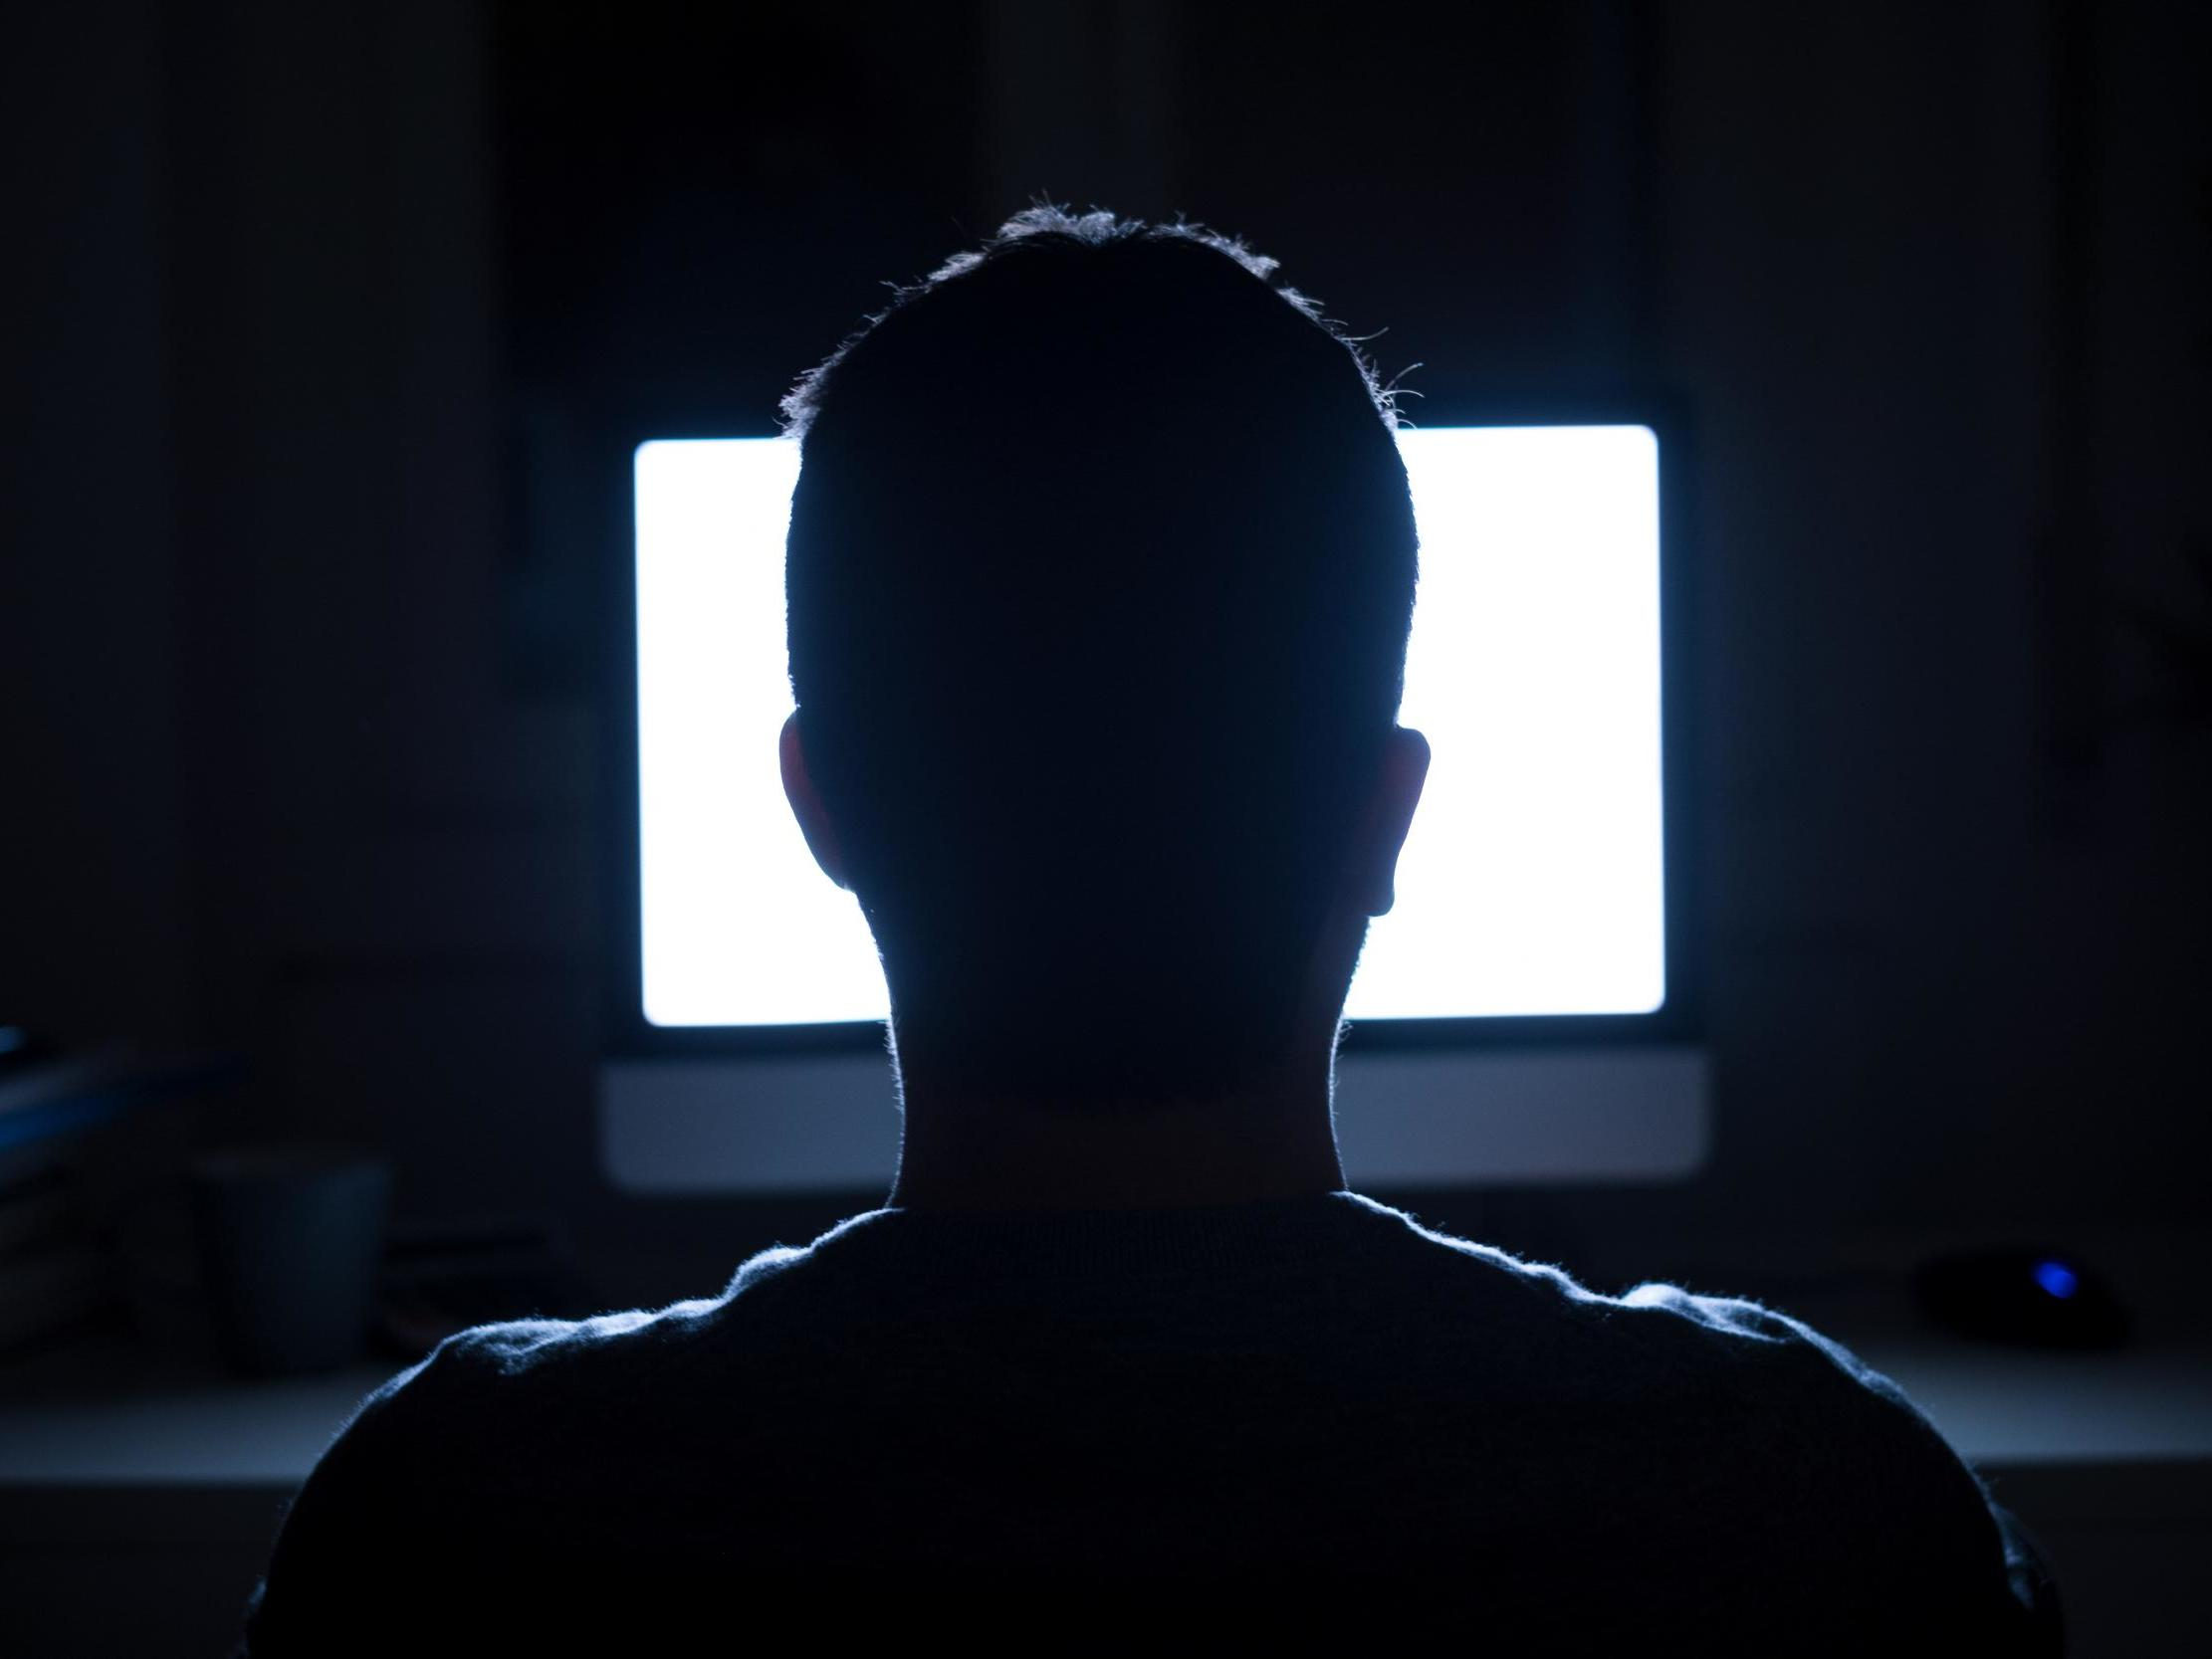 Live streaming 'Paedophile hunting' is on the rise – but are people right to take the law into their own hands?